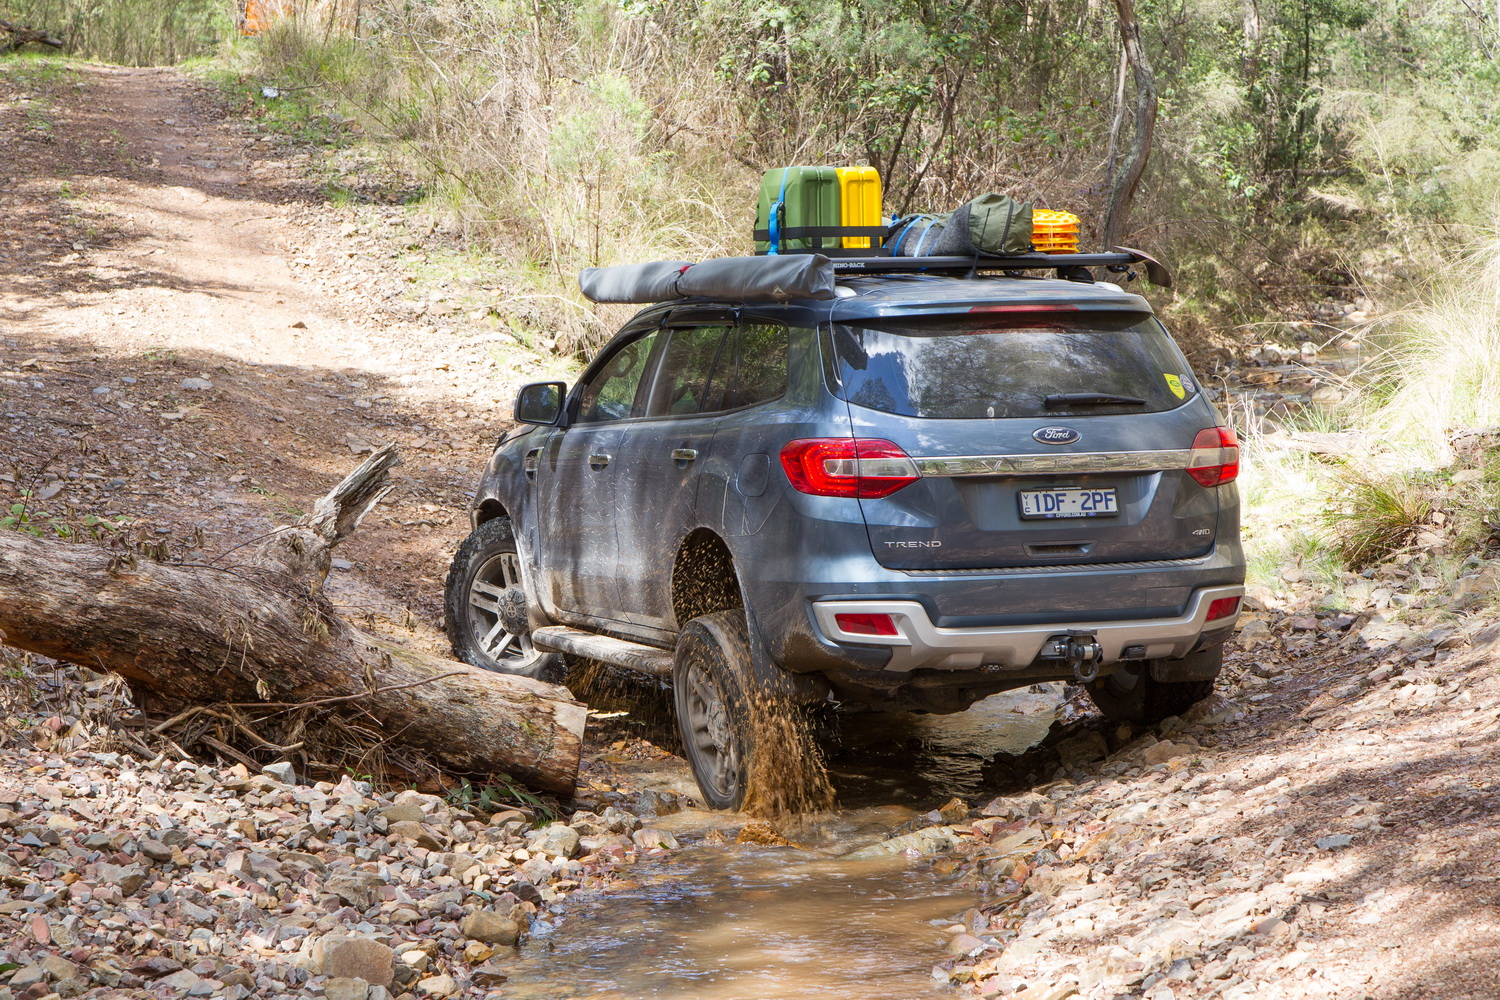 Why The Ford Everest Is Not Classifed As An Mc Off Road